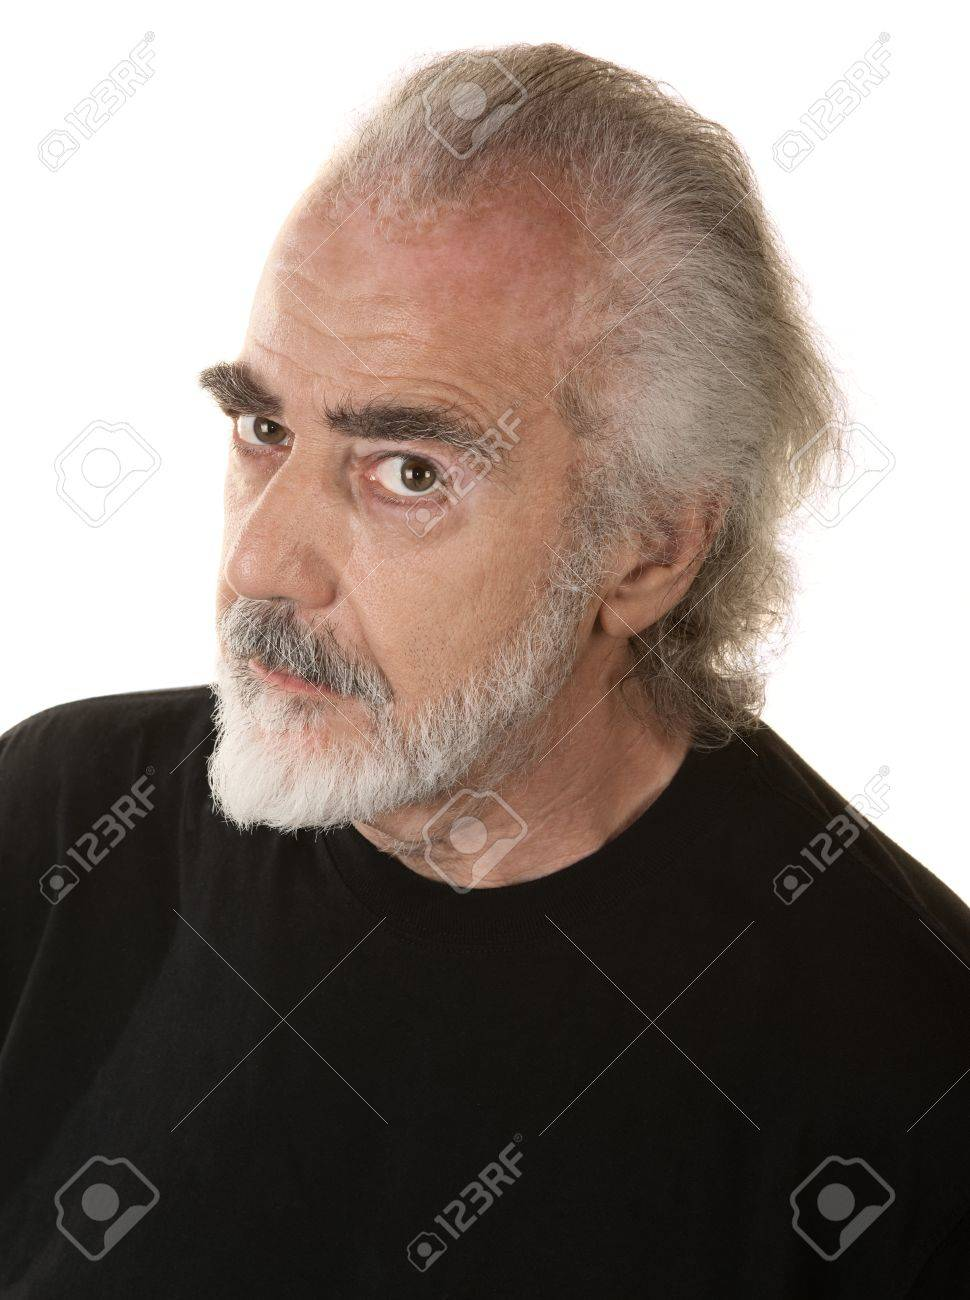 Mature bearded man in black looking suspicious Stock Photo - 16473162